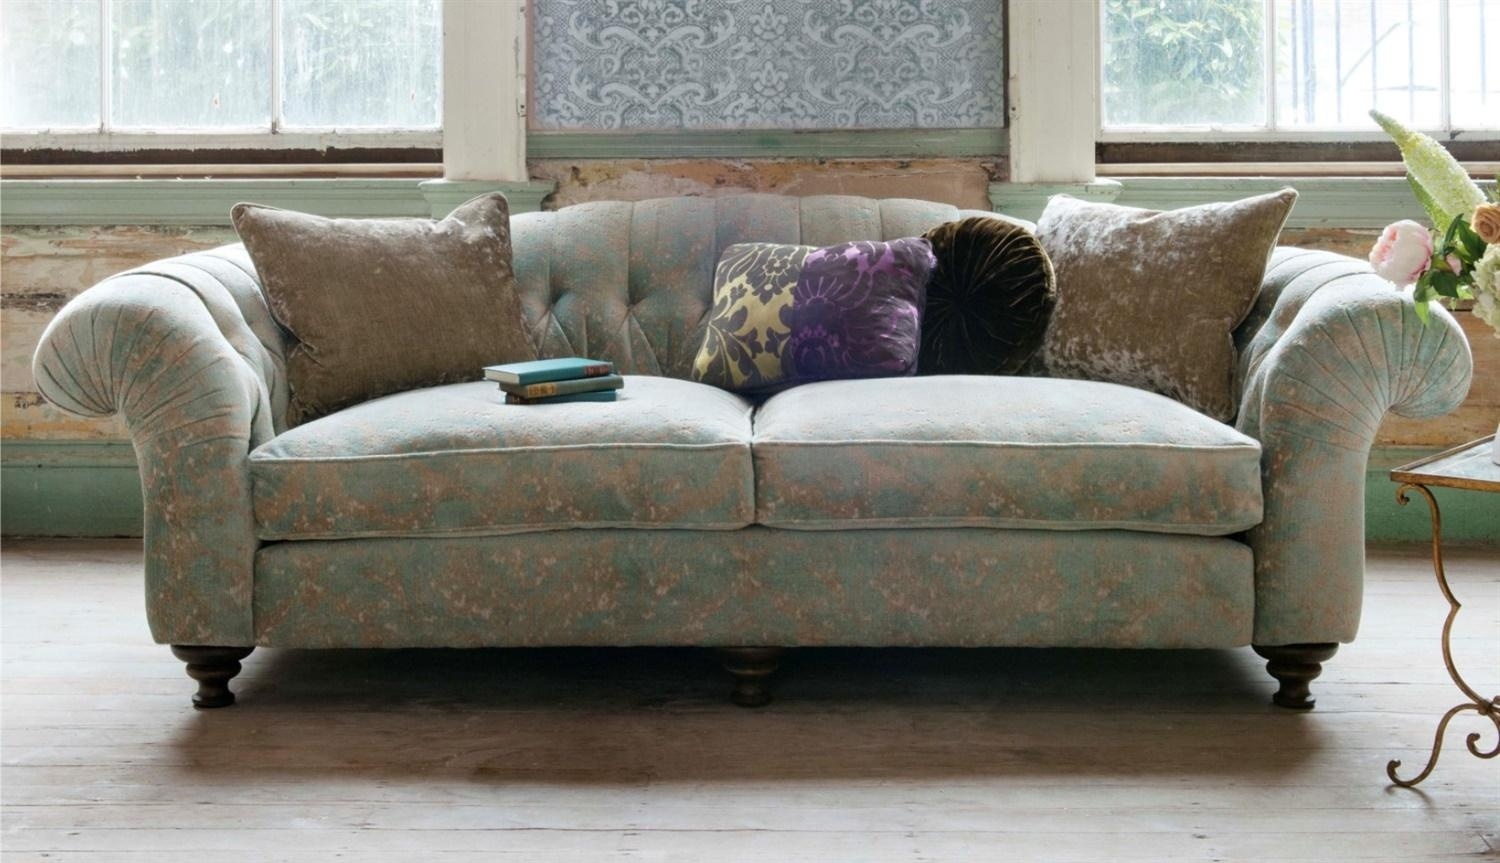 Bloomsbury Throughout Fabric Sofas (Image 3 of 20)